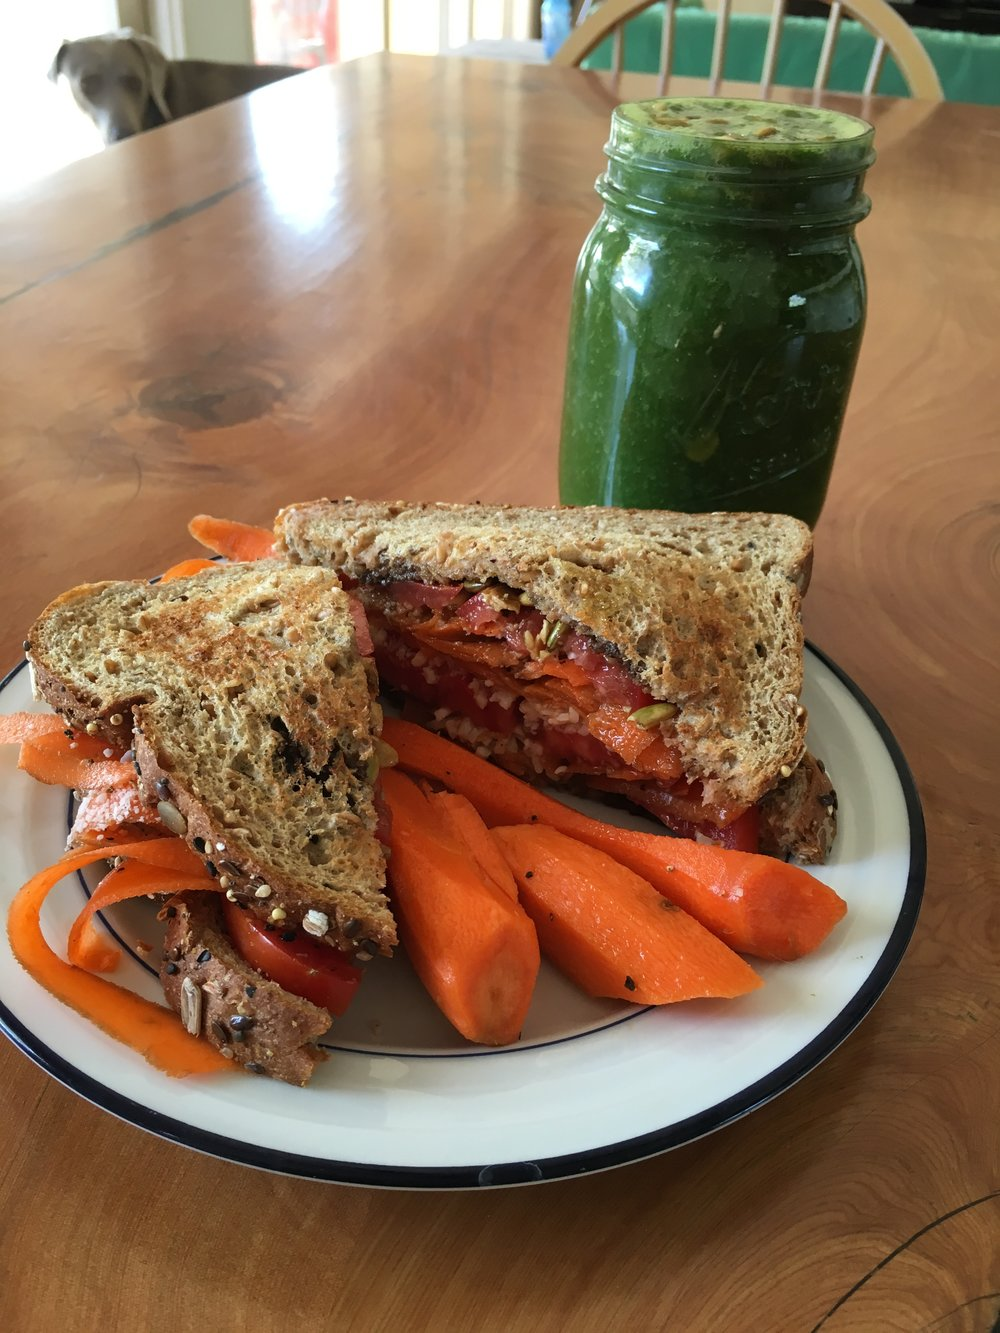 """Veggie sandwich and """"Everyday"""" green juice: Shaved carrots, tomatoes, shredded almond cheese, pepitas on Dave's Power Seed bread. In the green juice: Two apples, one banana, water, two handfuls of kale, juice of one lemon, Moon Juice adaptogens, chia seeds, curry powder, and pepitas."""